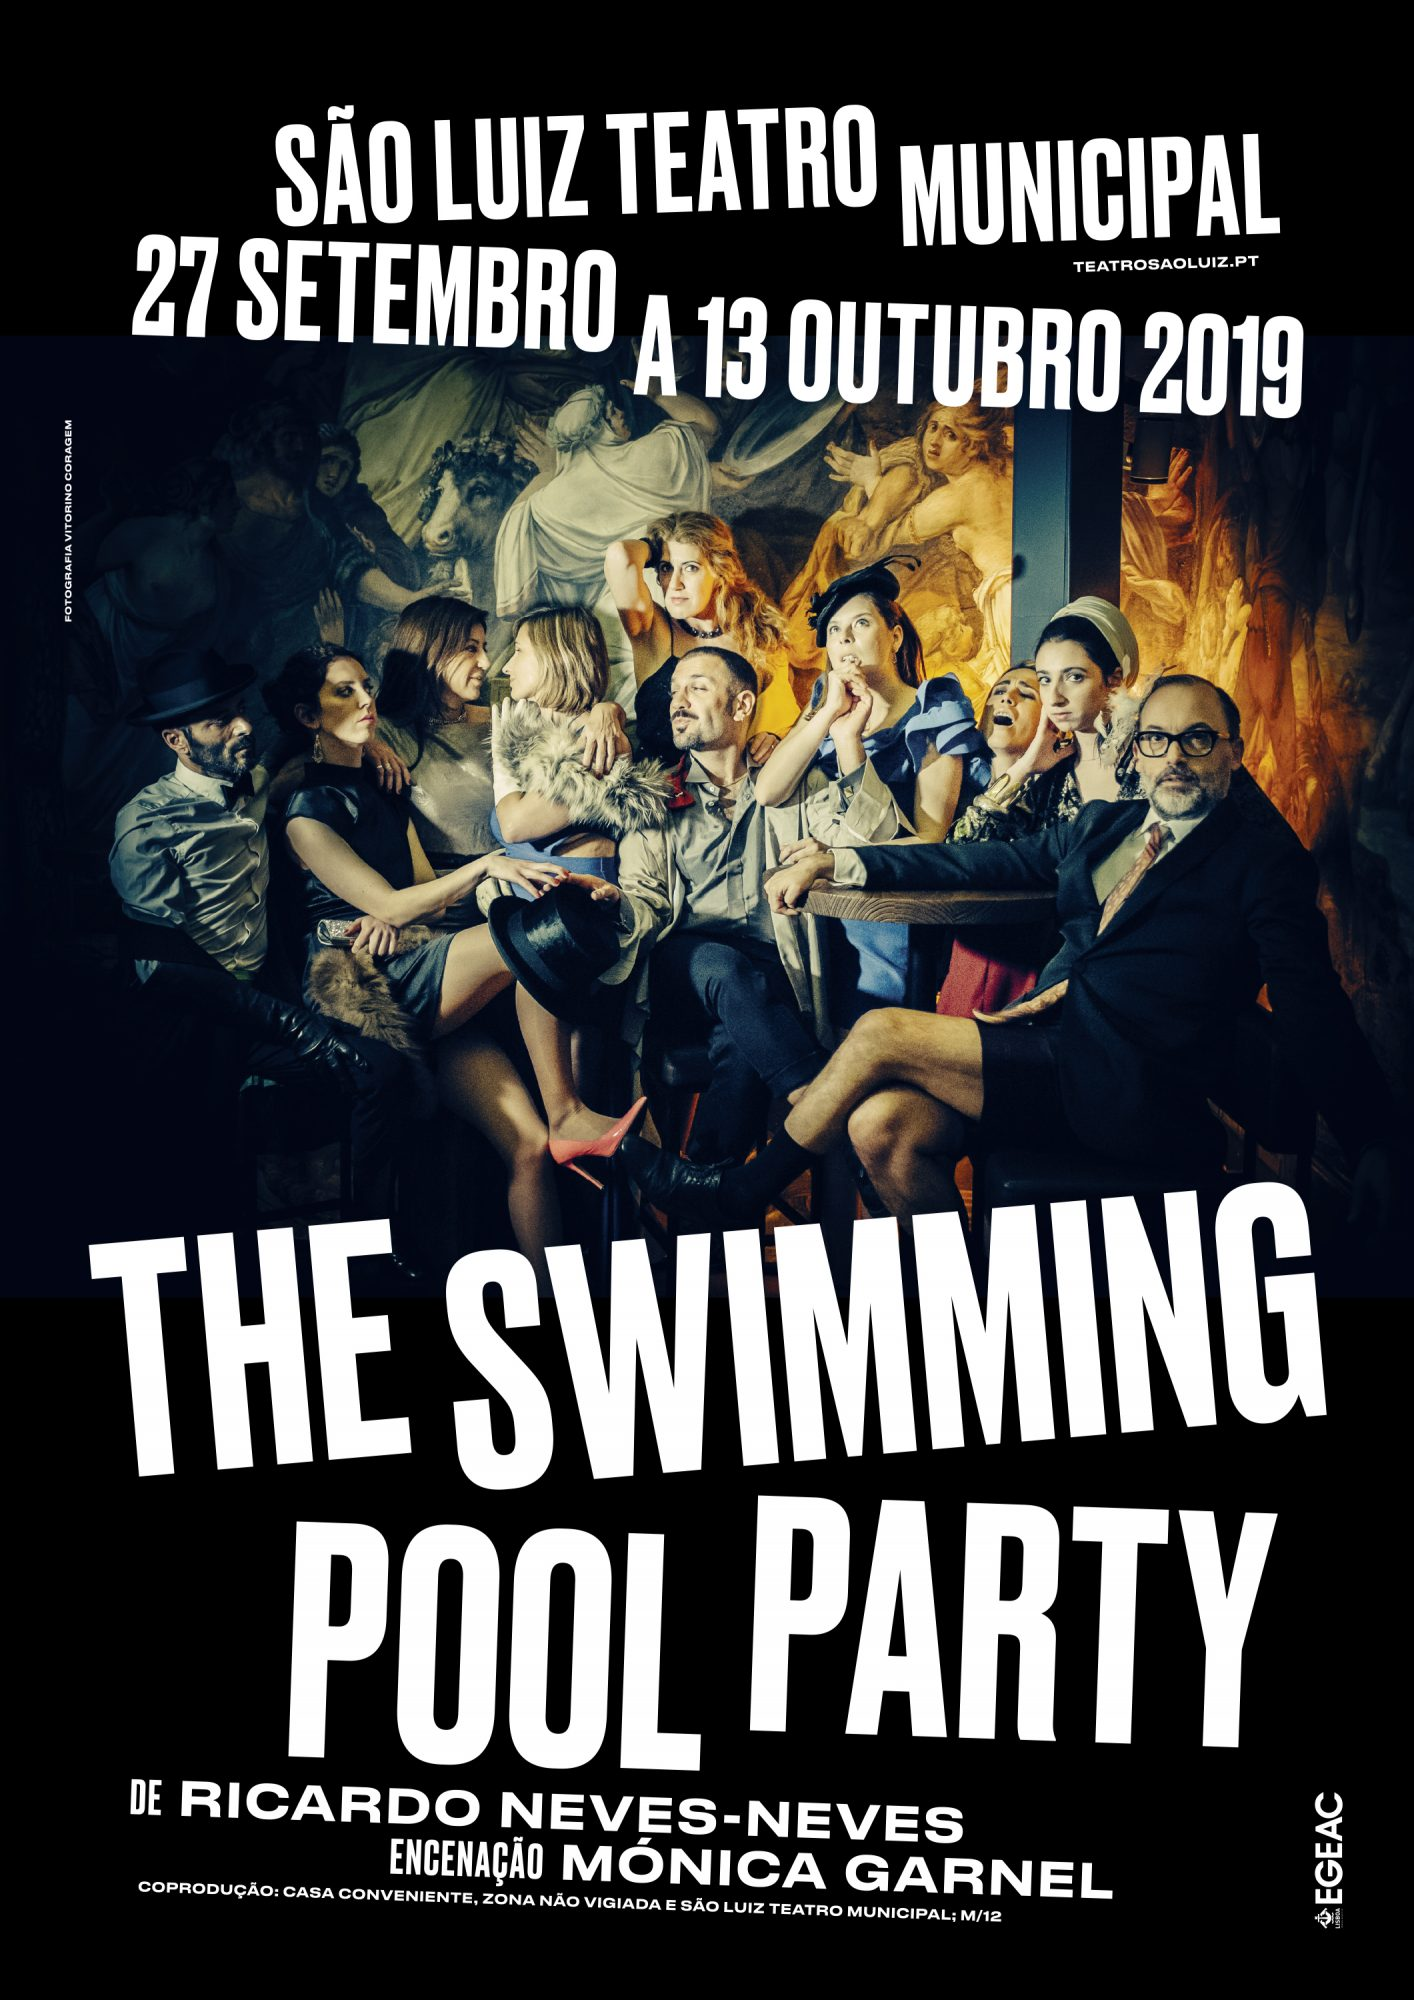 The Swimming Pool Party, setembro 2019